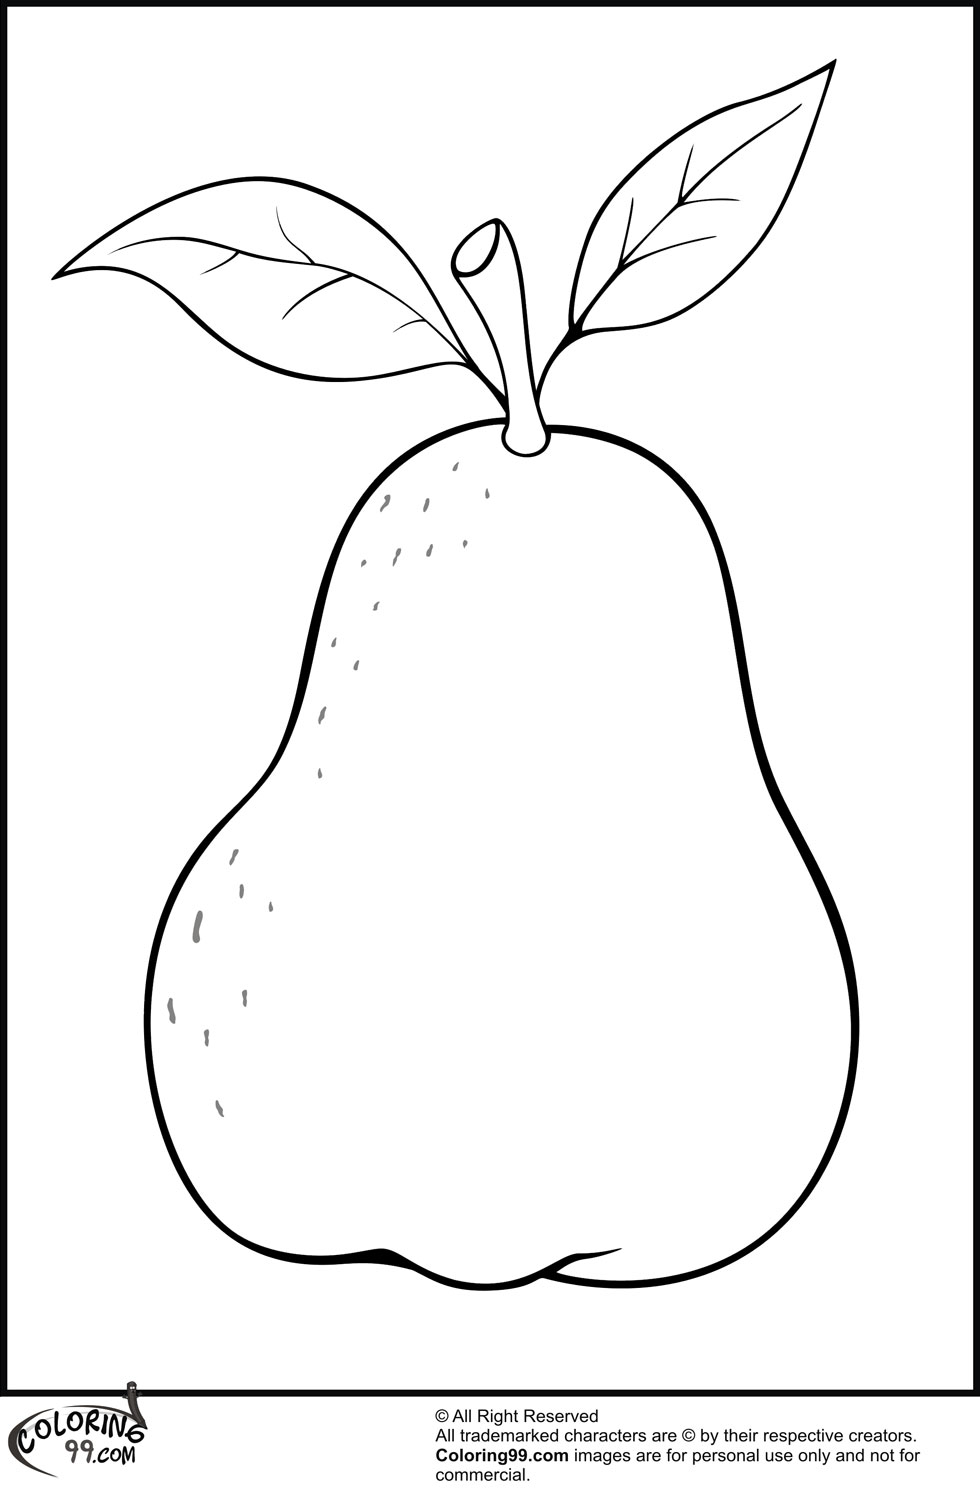 guava coloring pages guava coloring pages guava coloring pages 1 1